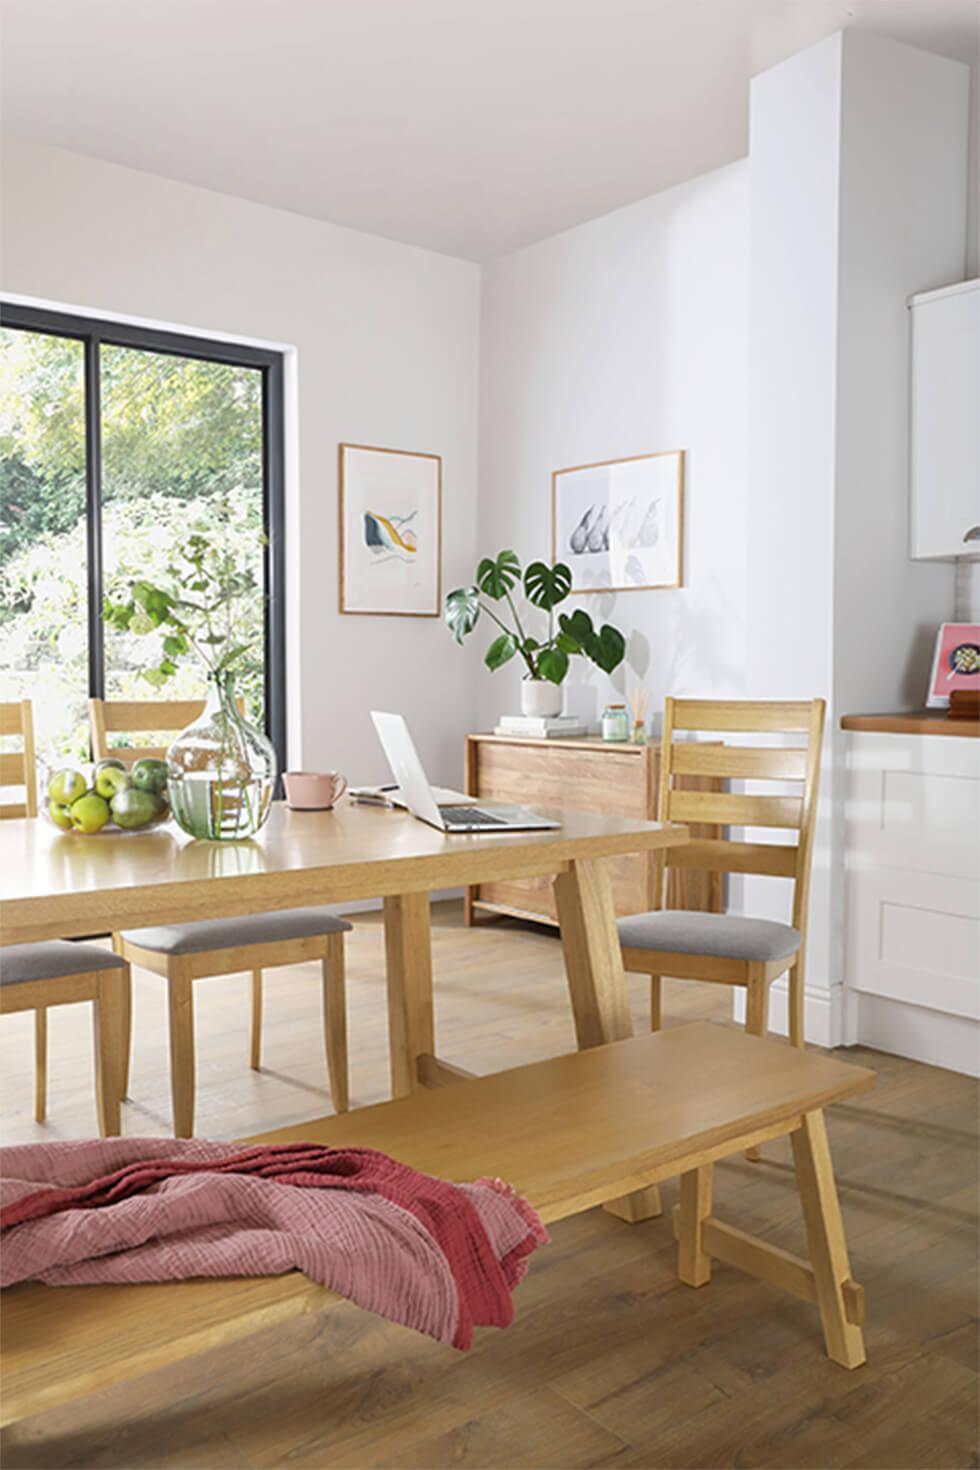 Working from home in an open plan kitchen with a wooden dining table and bench